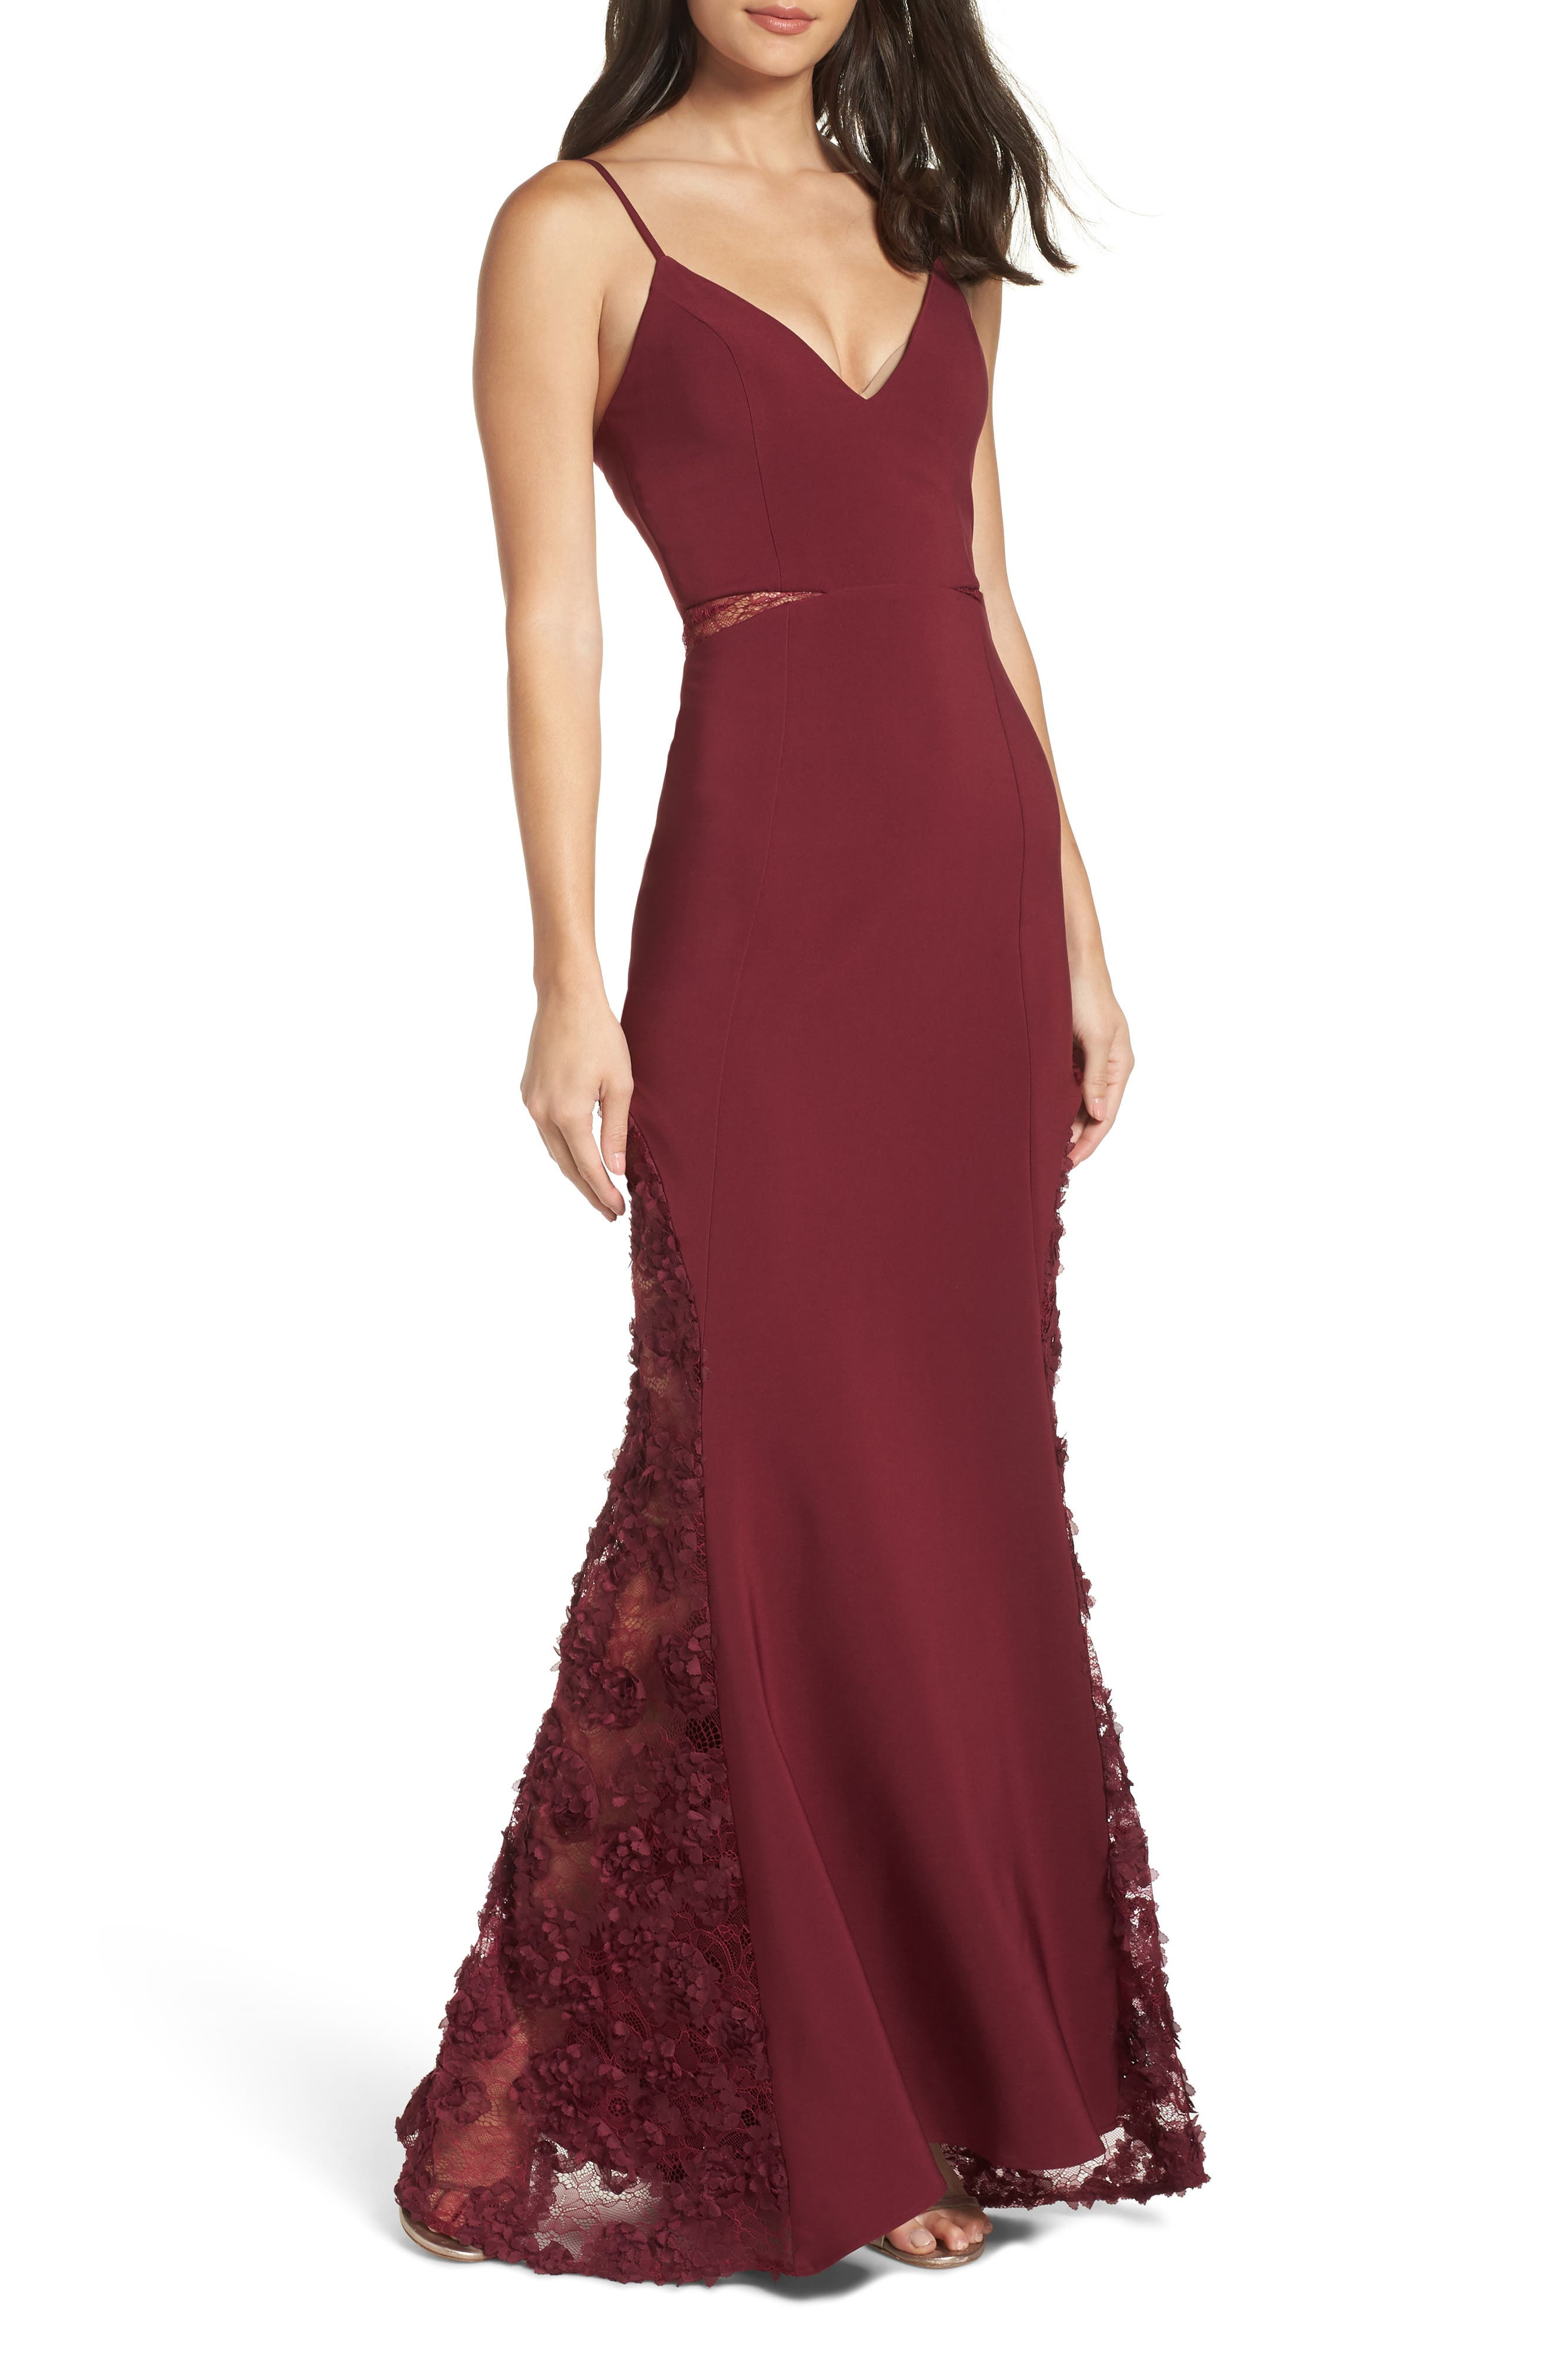 MARIA BIANCA NERO Shannon Lace Inset Gown in Burgundy